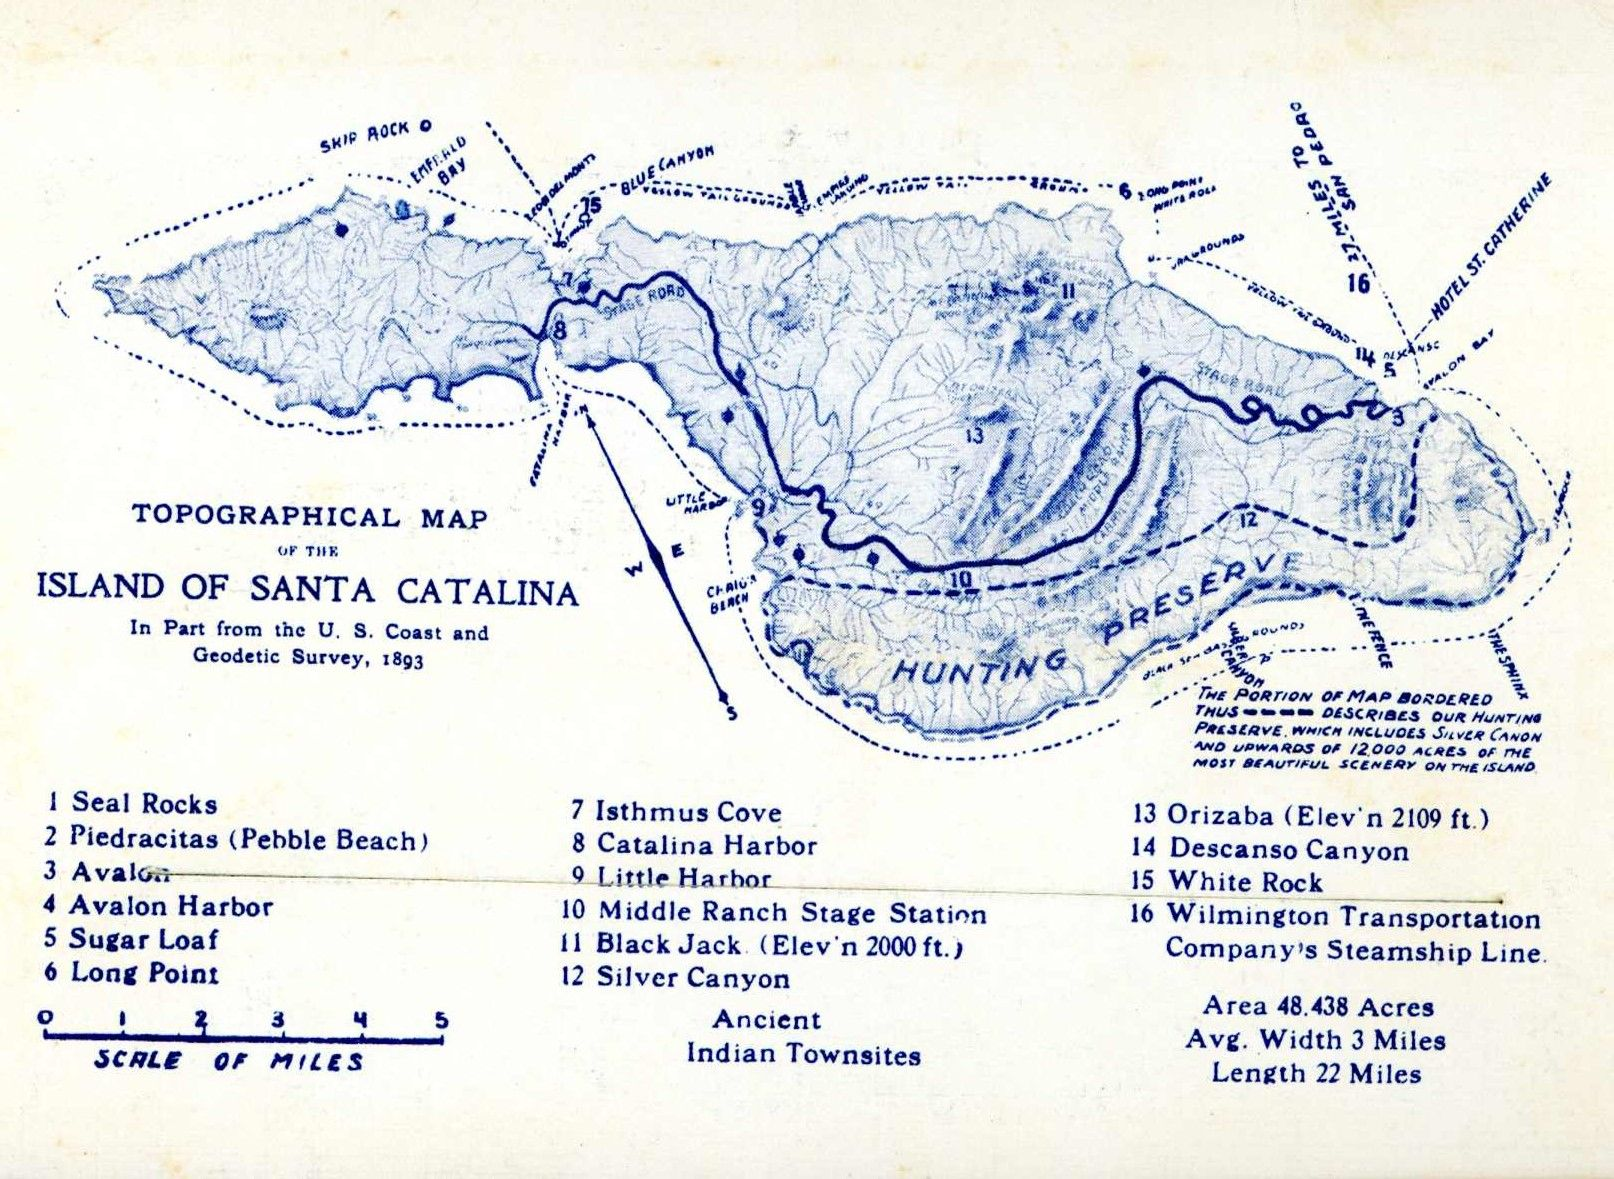 Old Map of Catalina postcard. Hagins collection. | MOMS OLD ... Catalina Map on